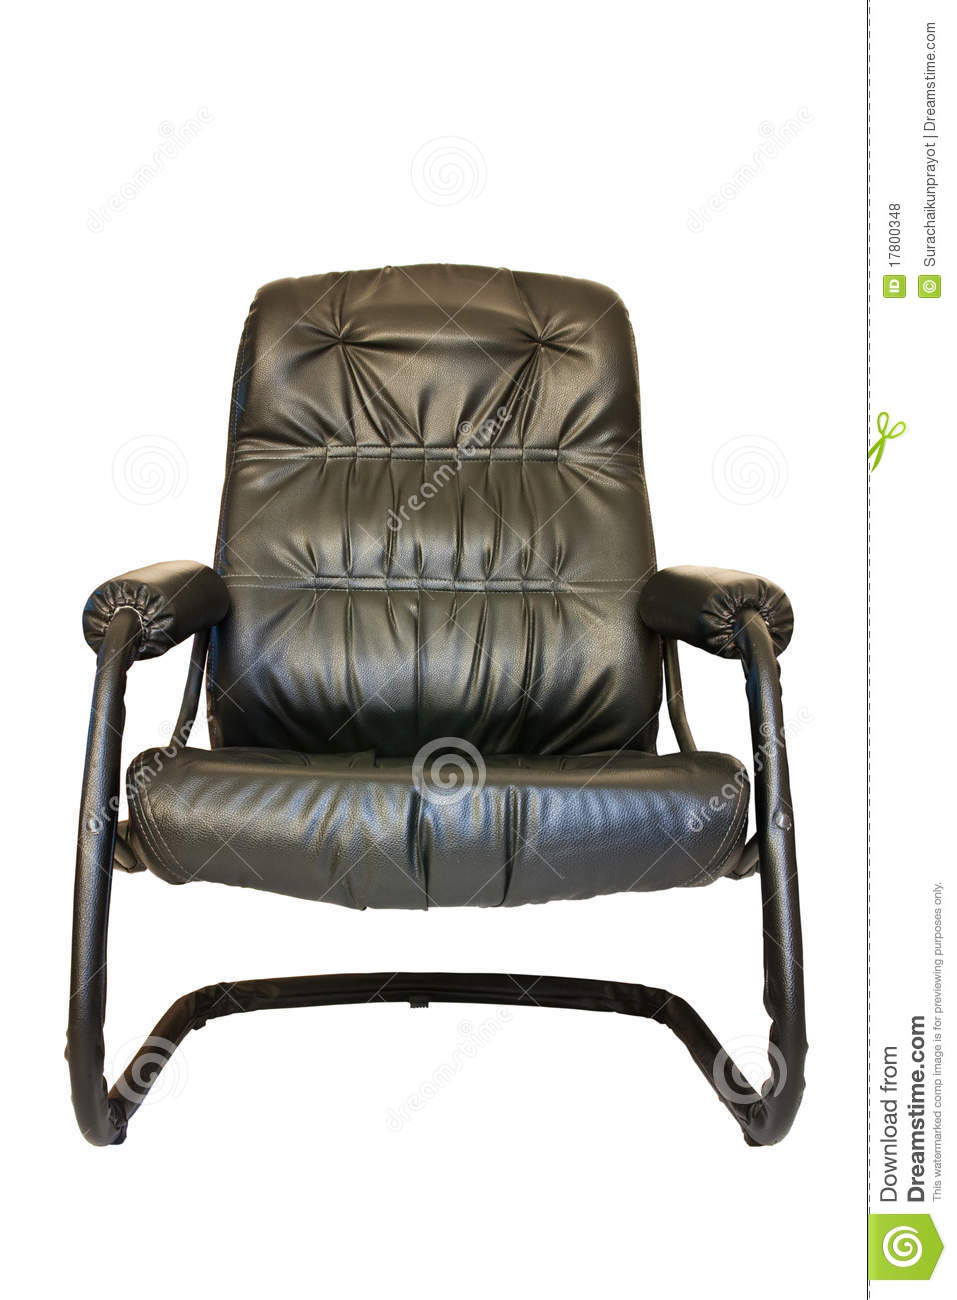 Arm Chair Royalty Free Stock Photos Image 17800348